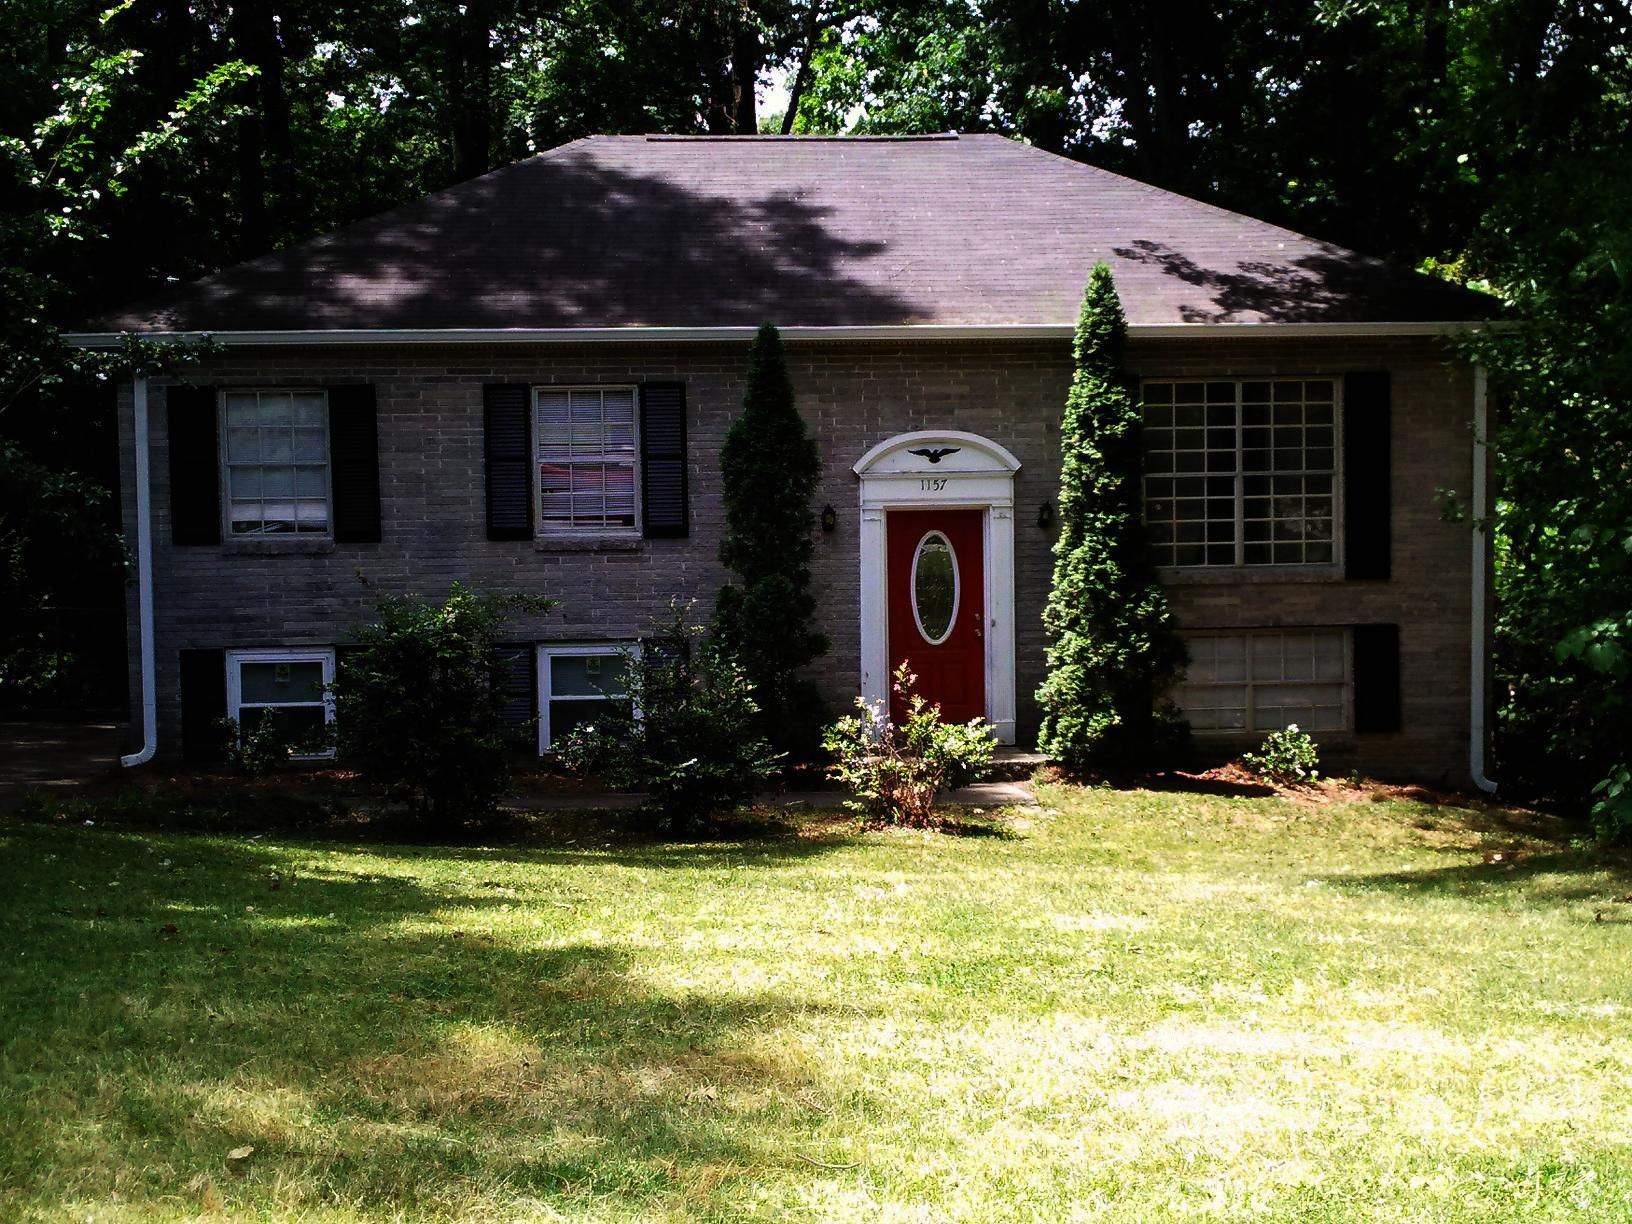 1157 wynbrook rd sw marietta ga 30008 estimate and home details trulia